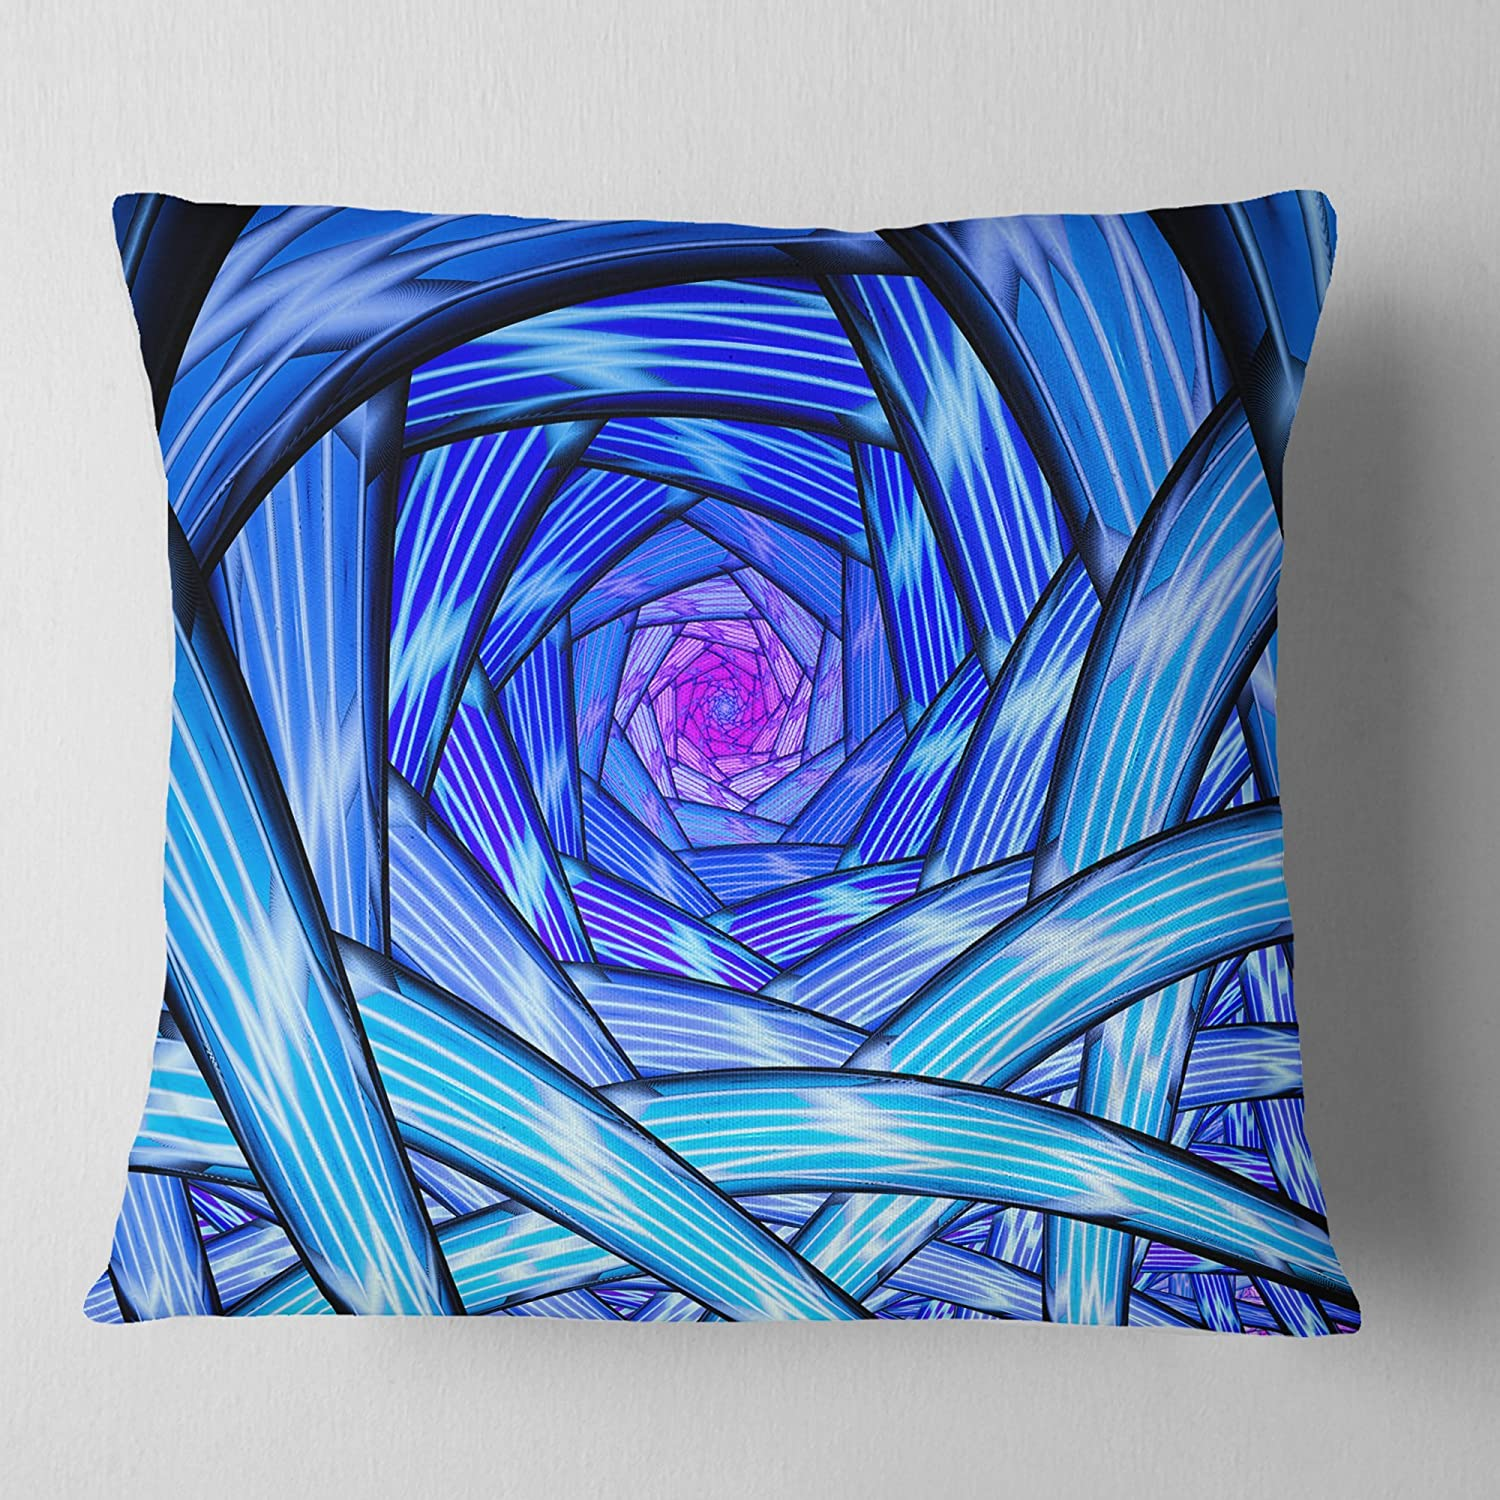 in Sofa Throw Pillow 16 in Designart CU12064-16-16 Mysterious Psychedelic Fractal Pattern Abstract Cushion Cover for Living Room x 16 in